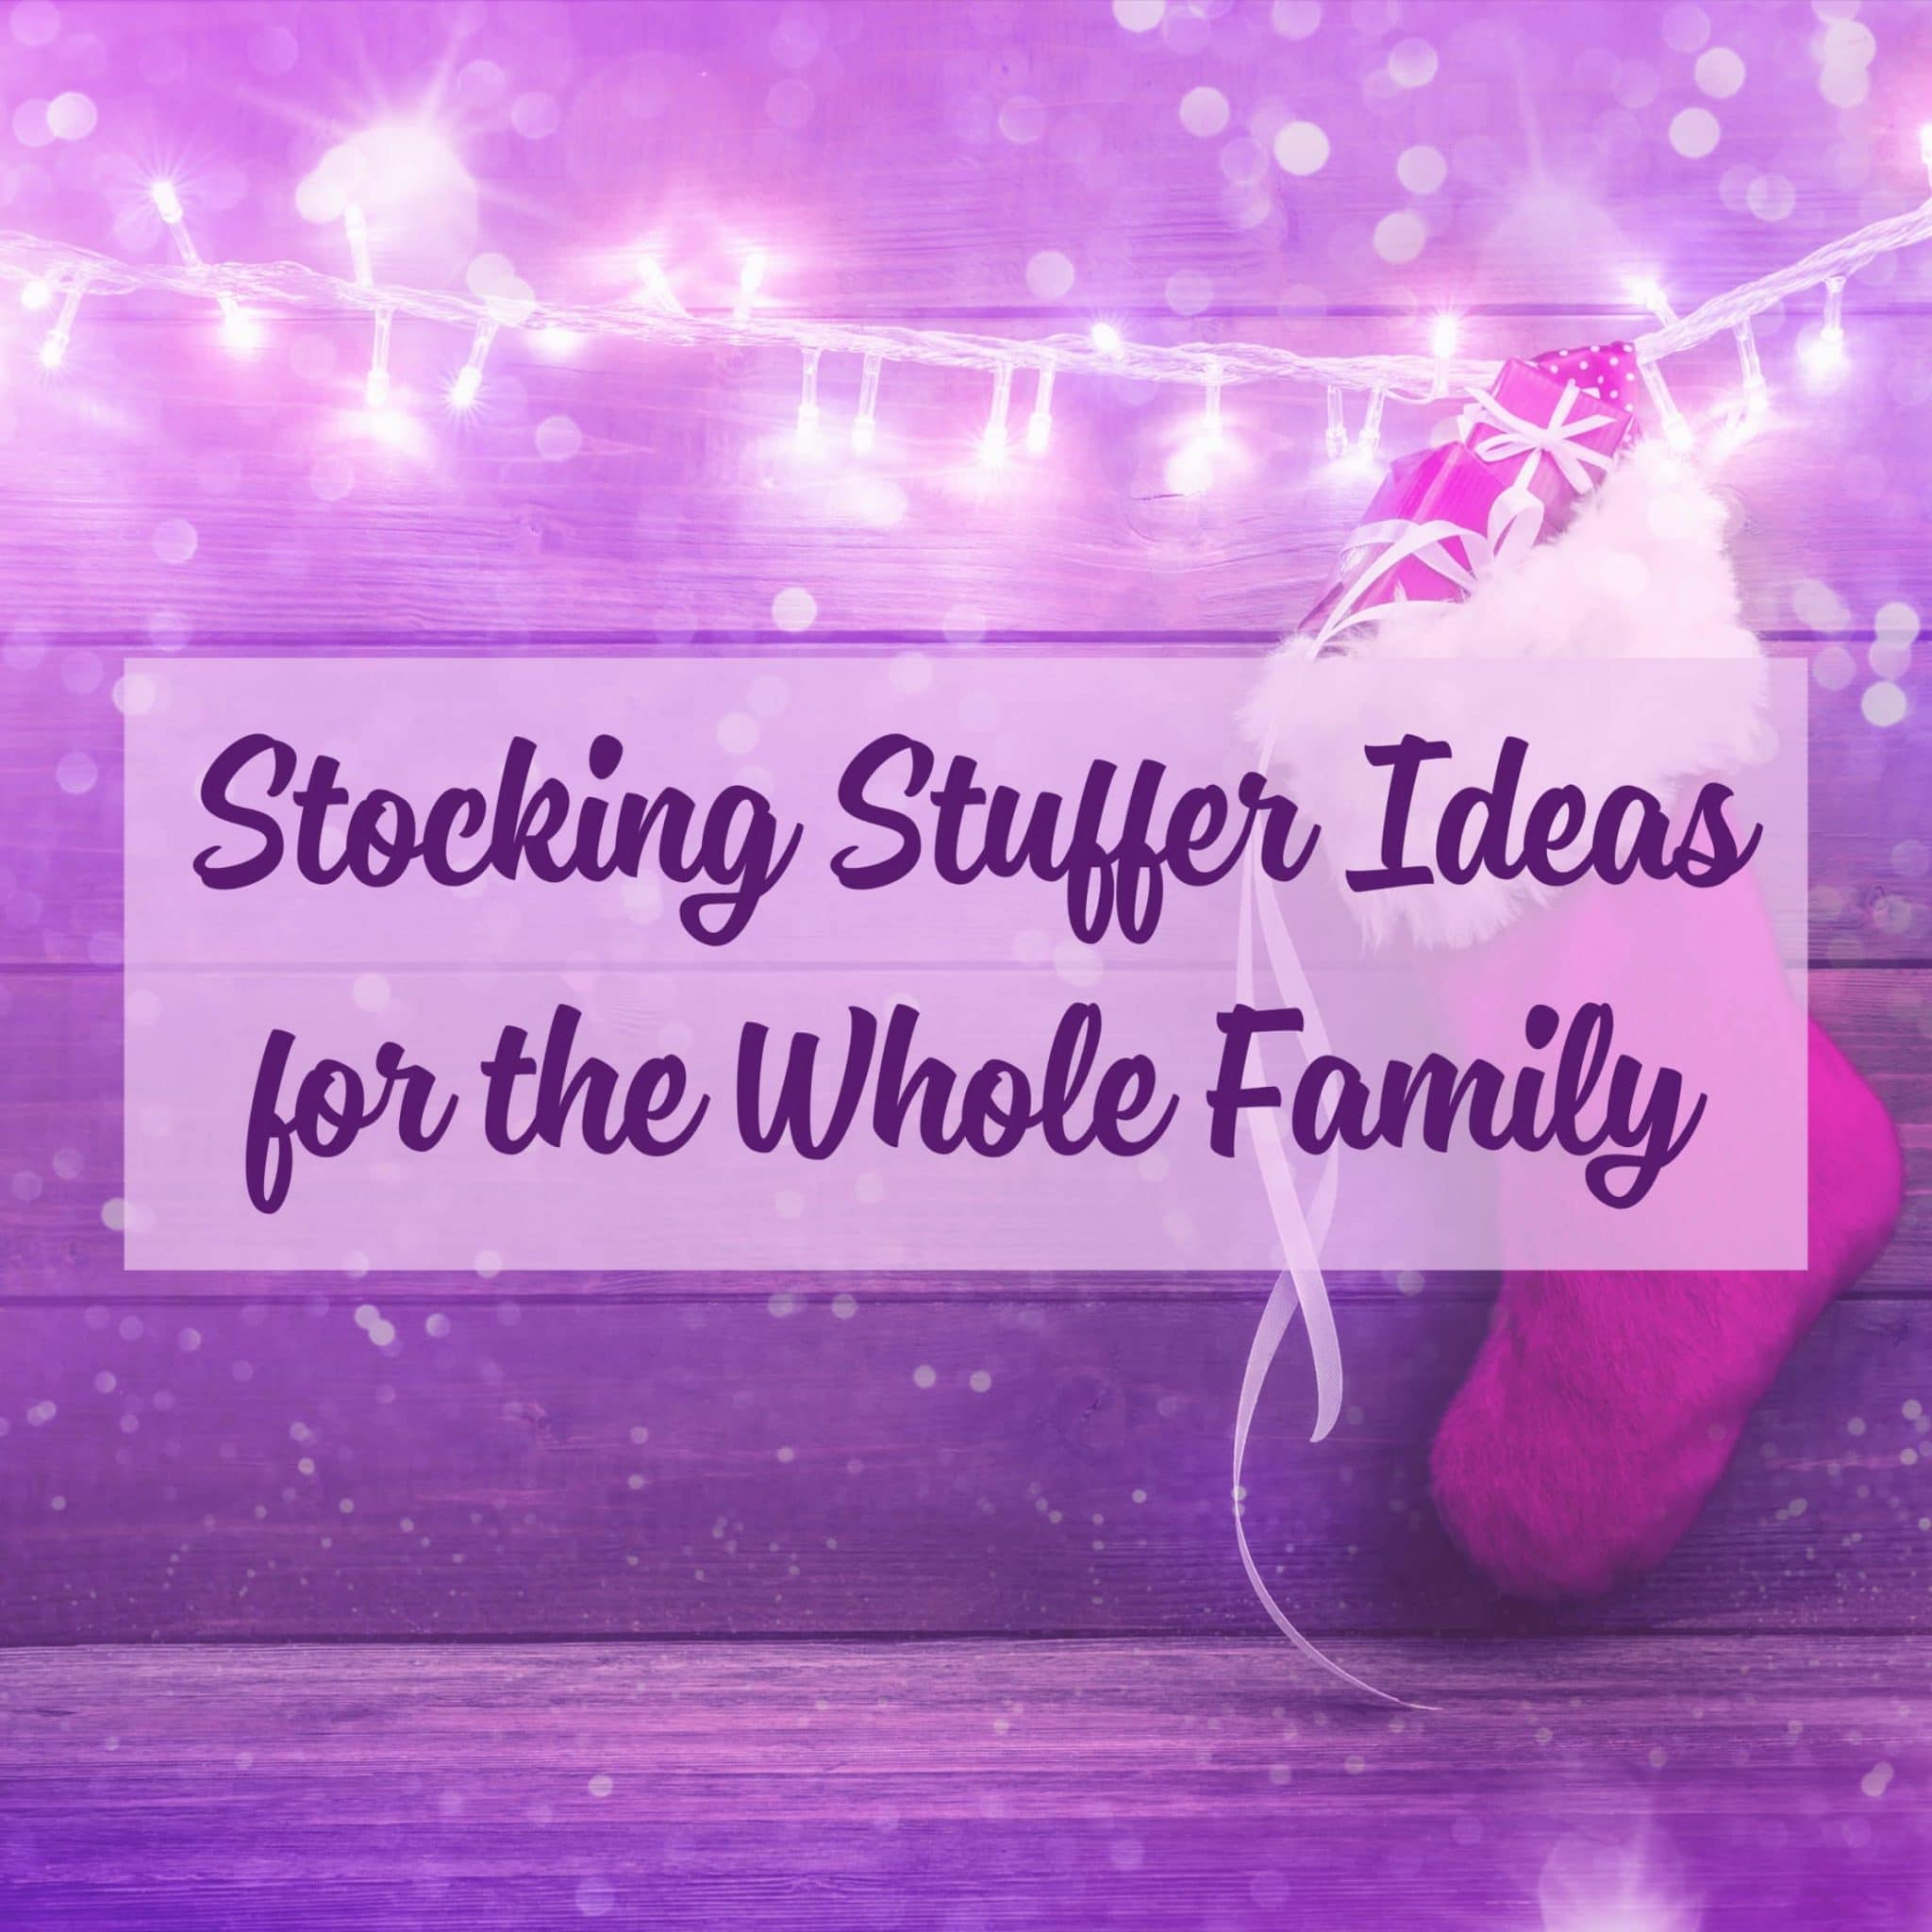 Stocking Stuffer Ideas for the Whole Family